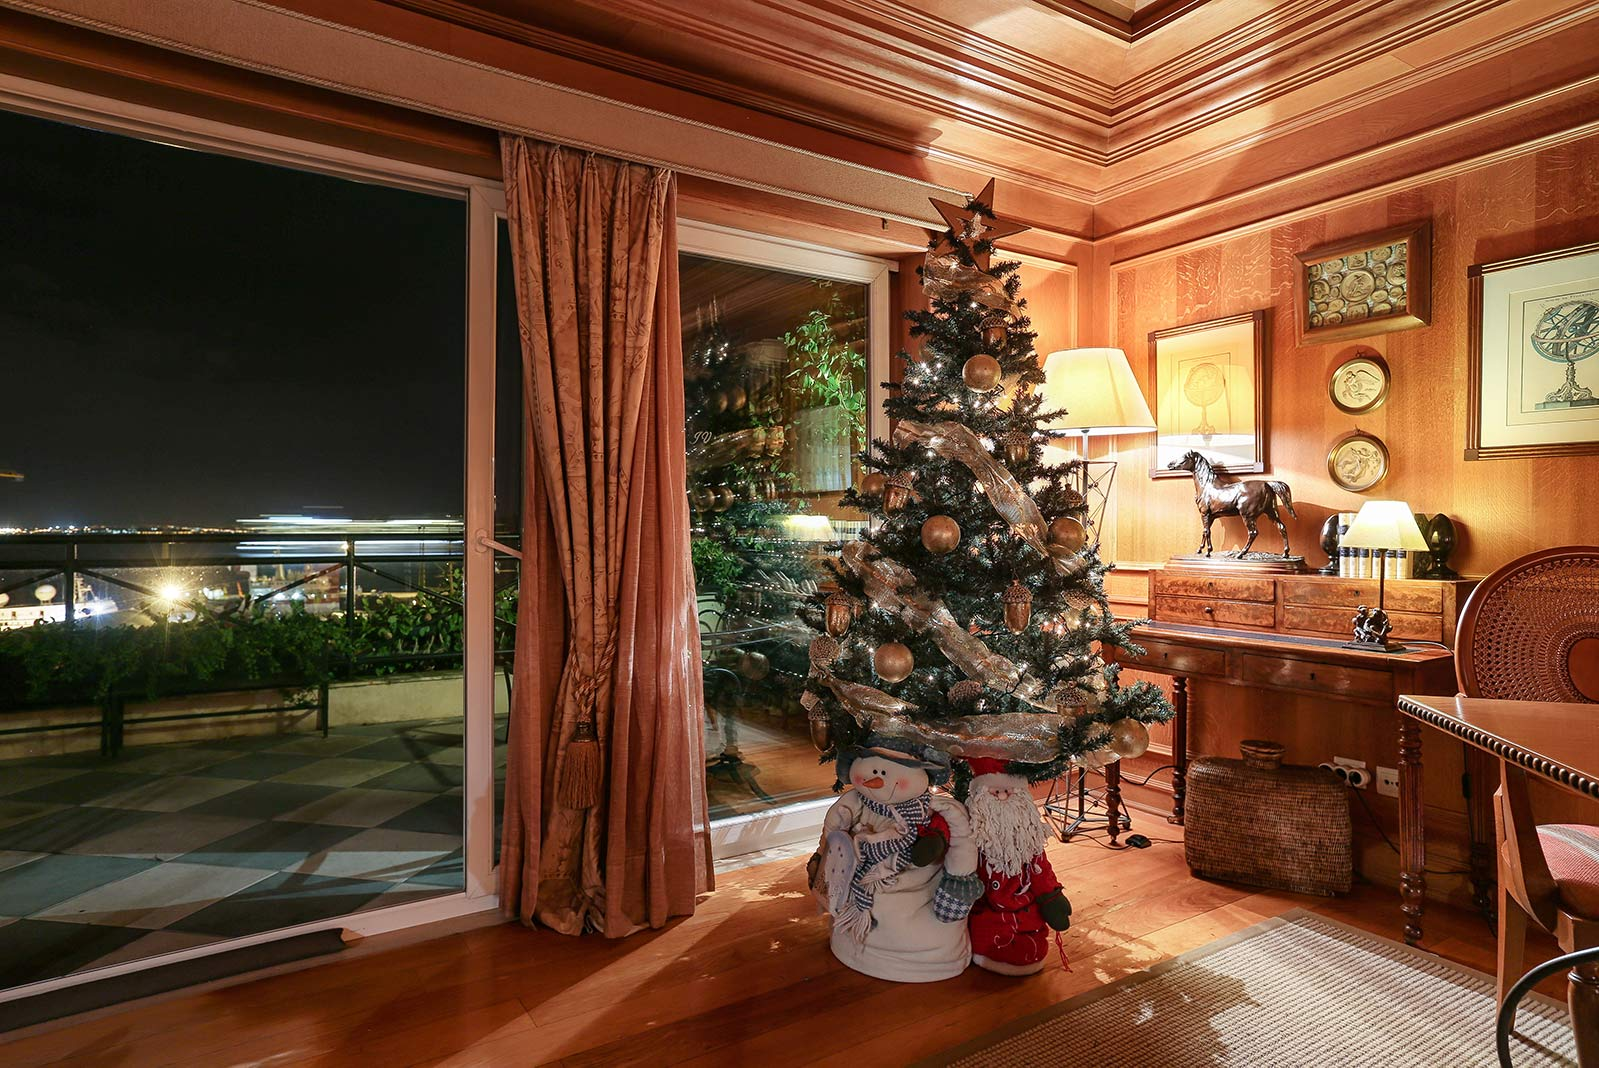 This Christmas amaze with the offer of a Charming Refuge in Lisbon